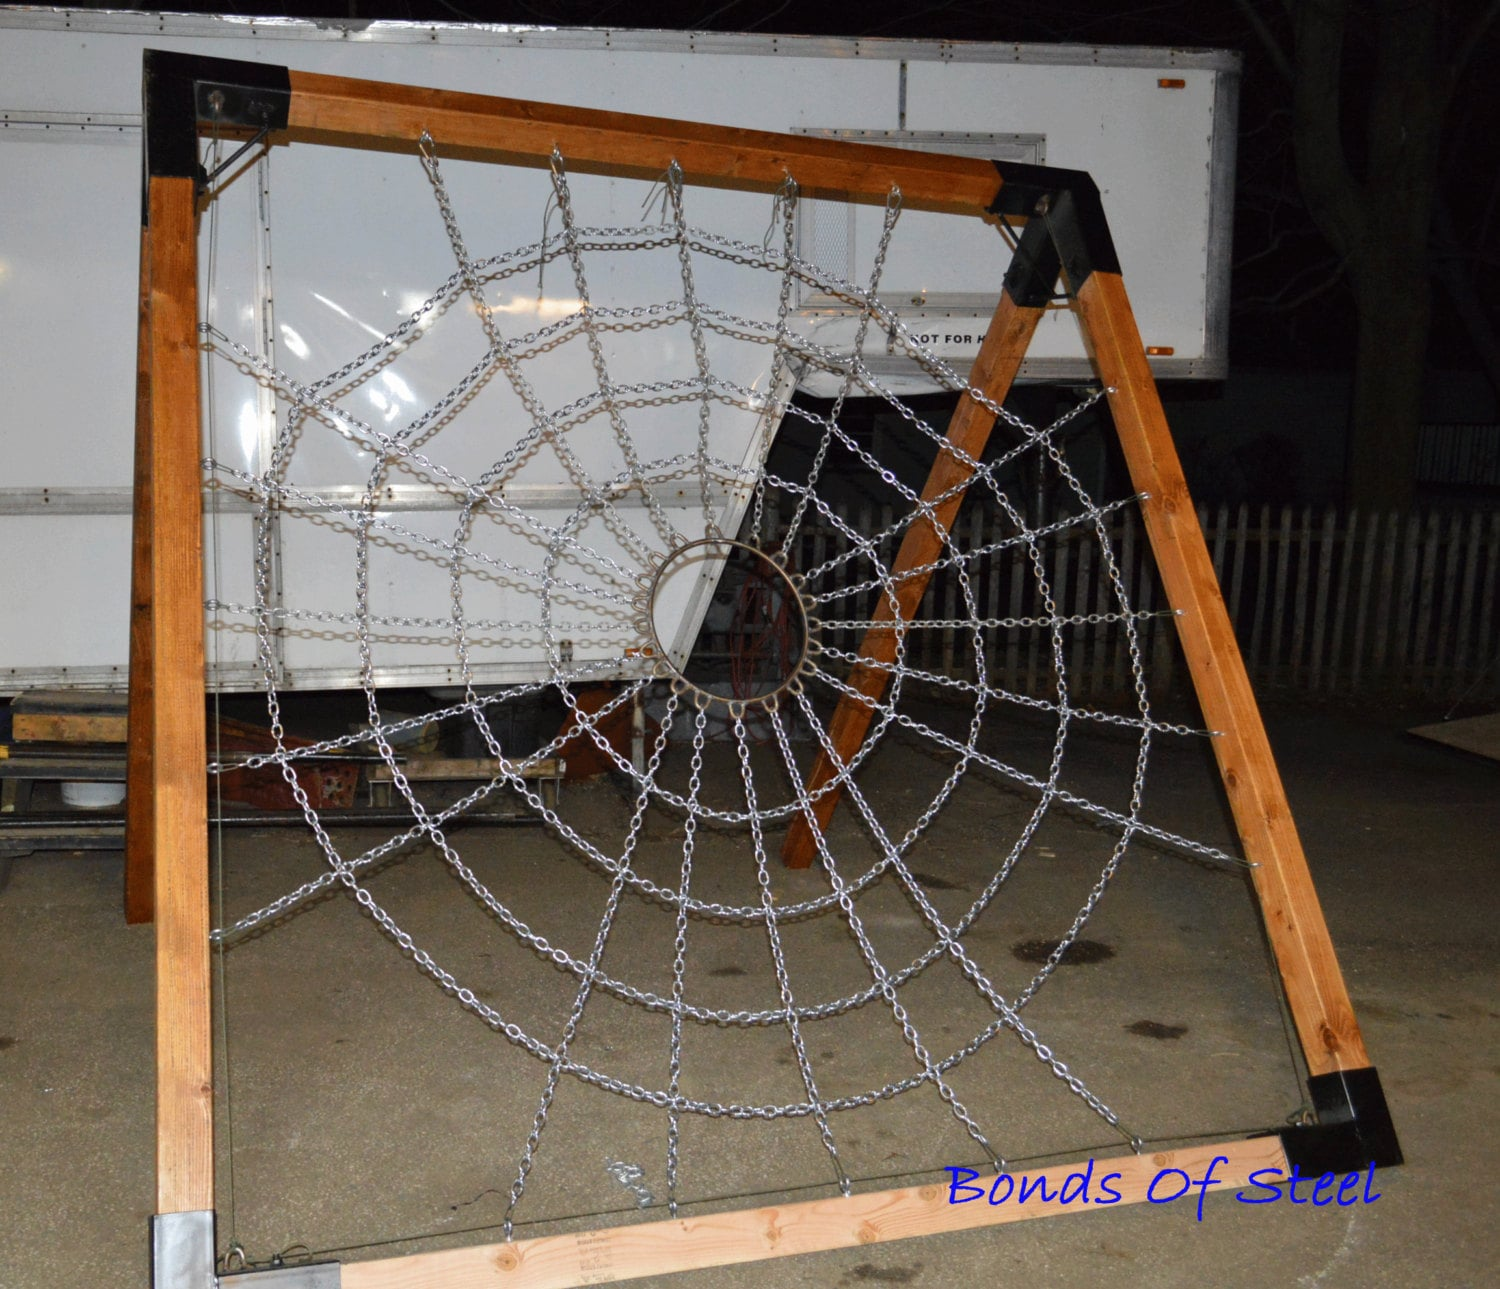 Spider Web Suspension Frame Mature Bonds Of Steel Bdsm Gear